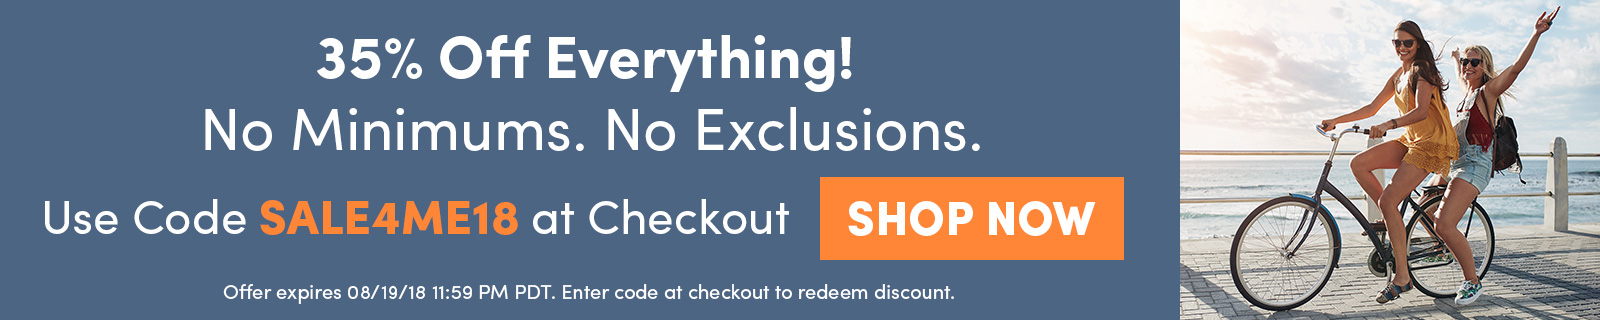 35% Off Everything!  No Minimums. No Exclusions. Use Code SALE4ME18 at Checkout SHOP NOW